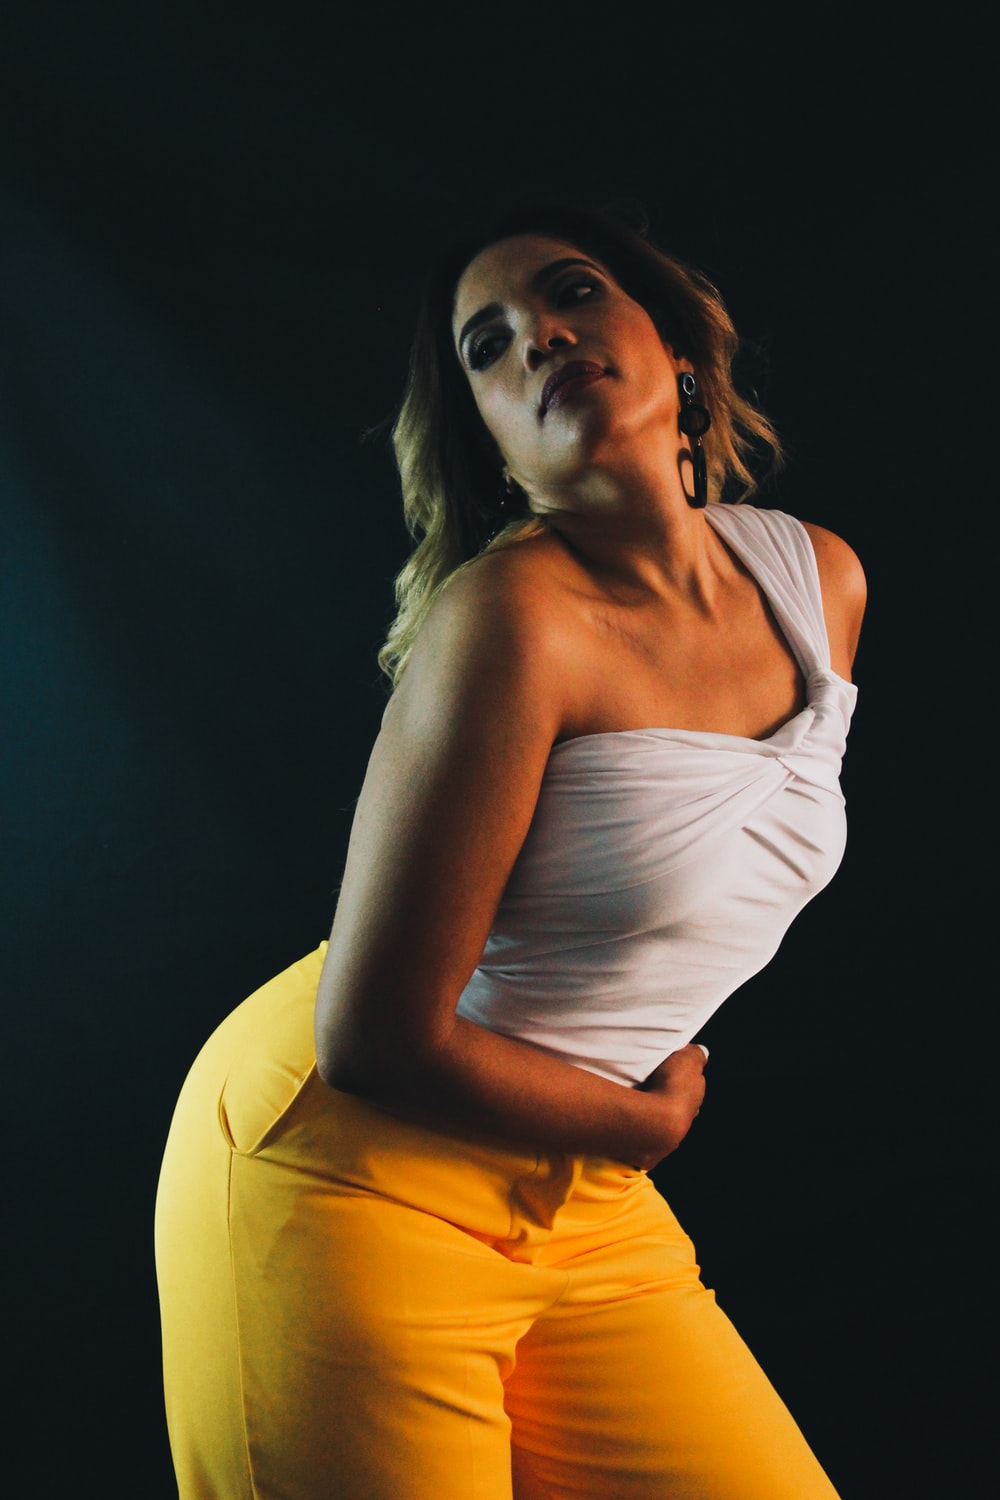 woman in white tank top and yellow pants